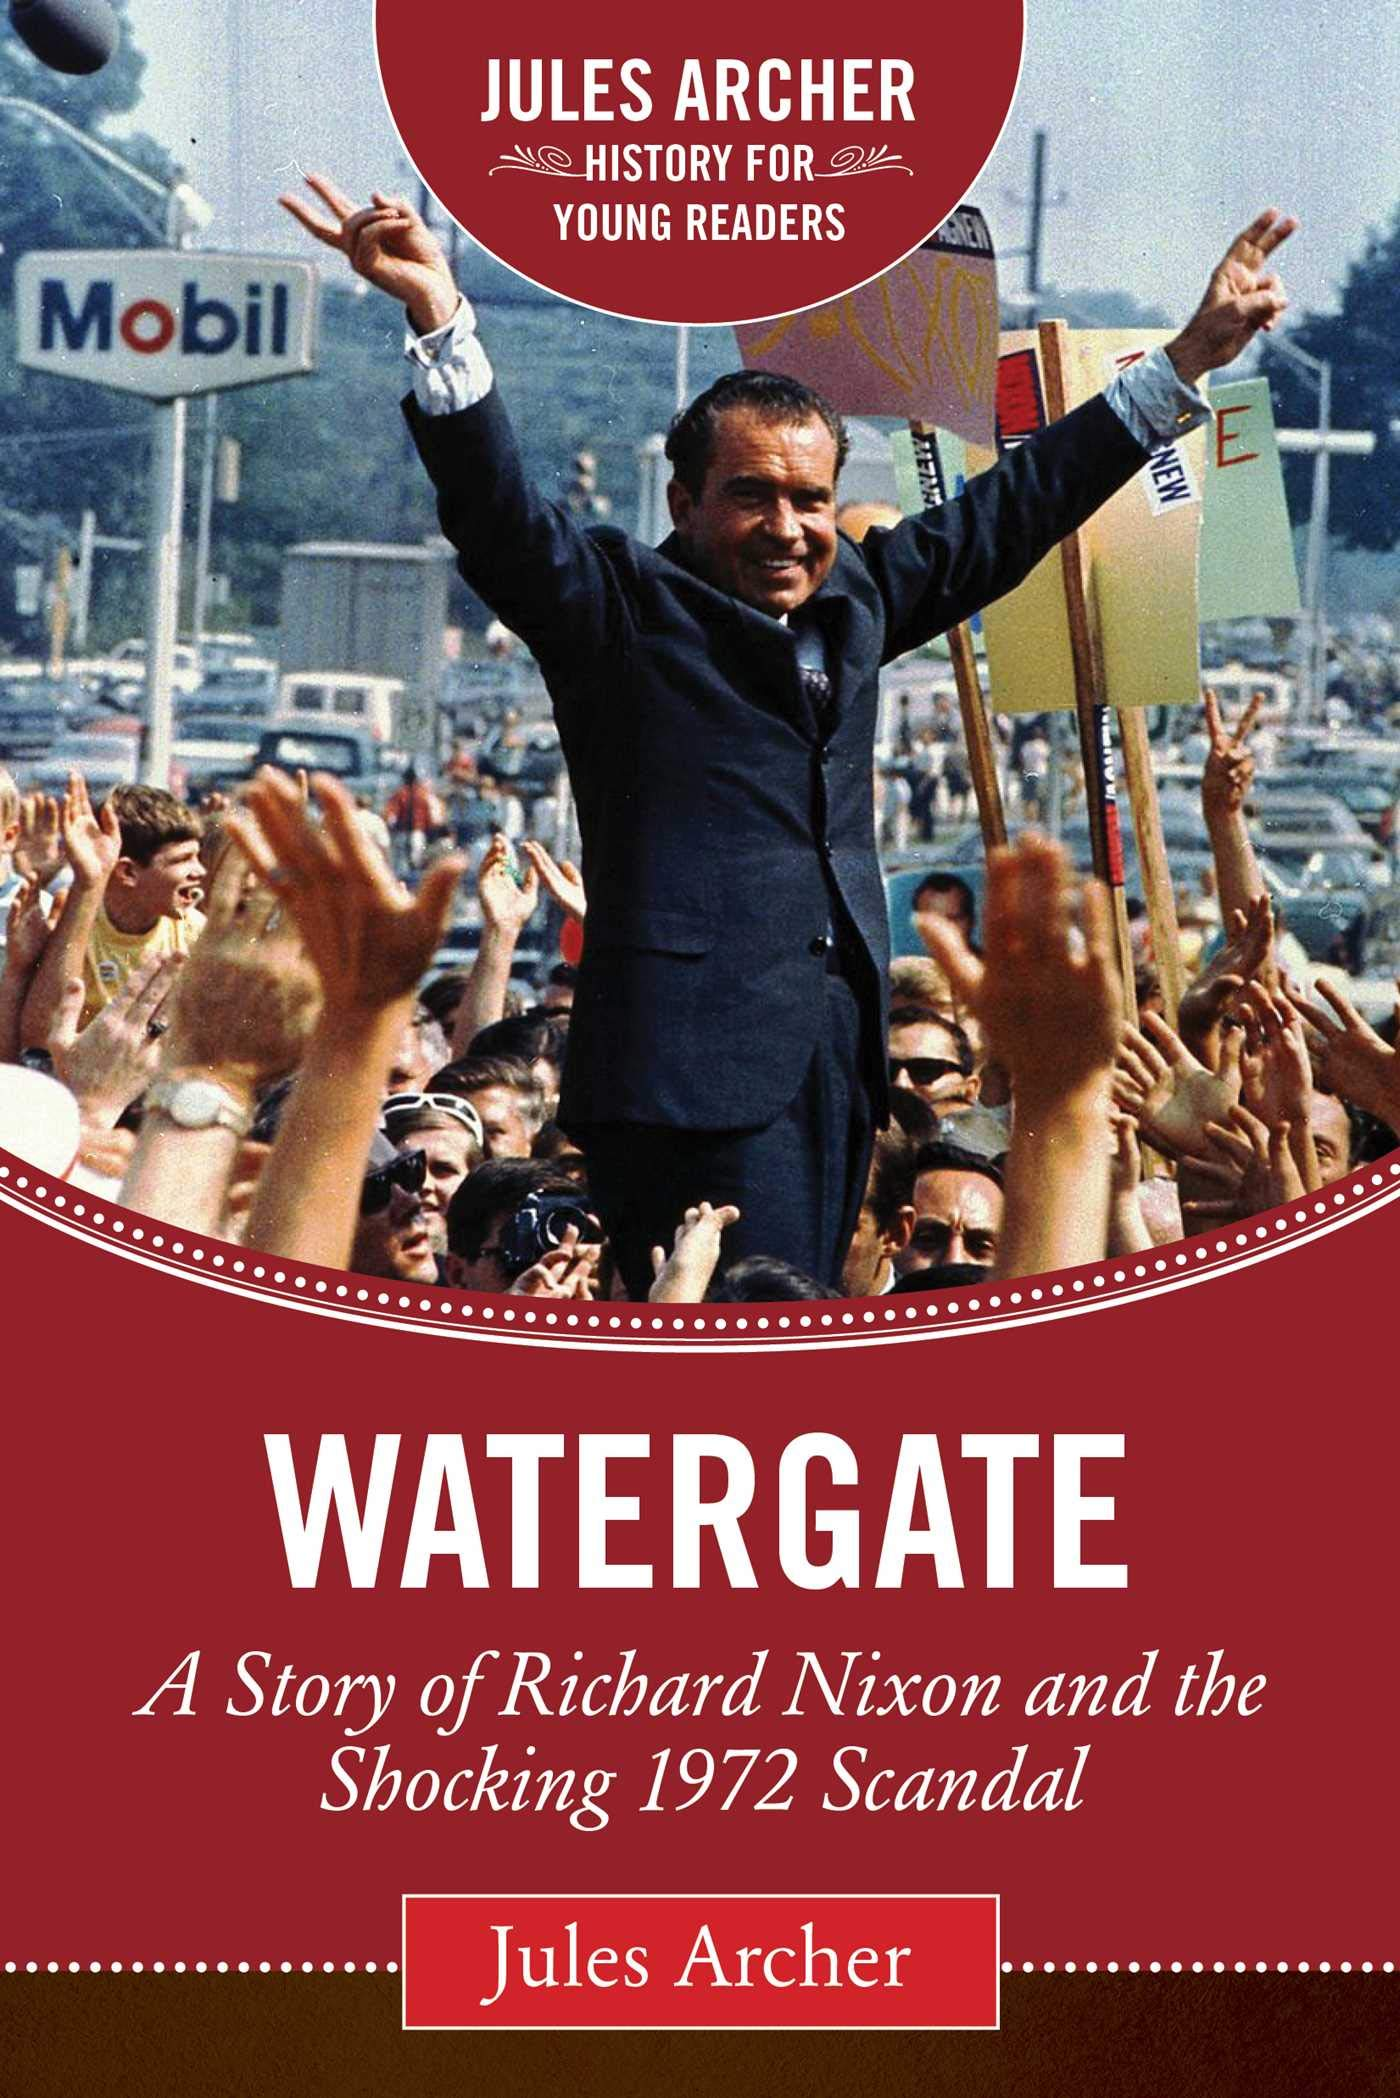 Watergate A Story Of Richard Nixon And The Shocking 1972 Scandal Jules Archer History For Young Readers Hardcover June 23 2015